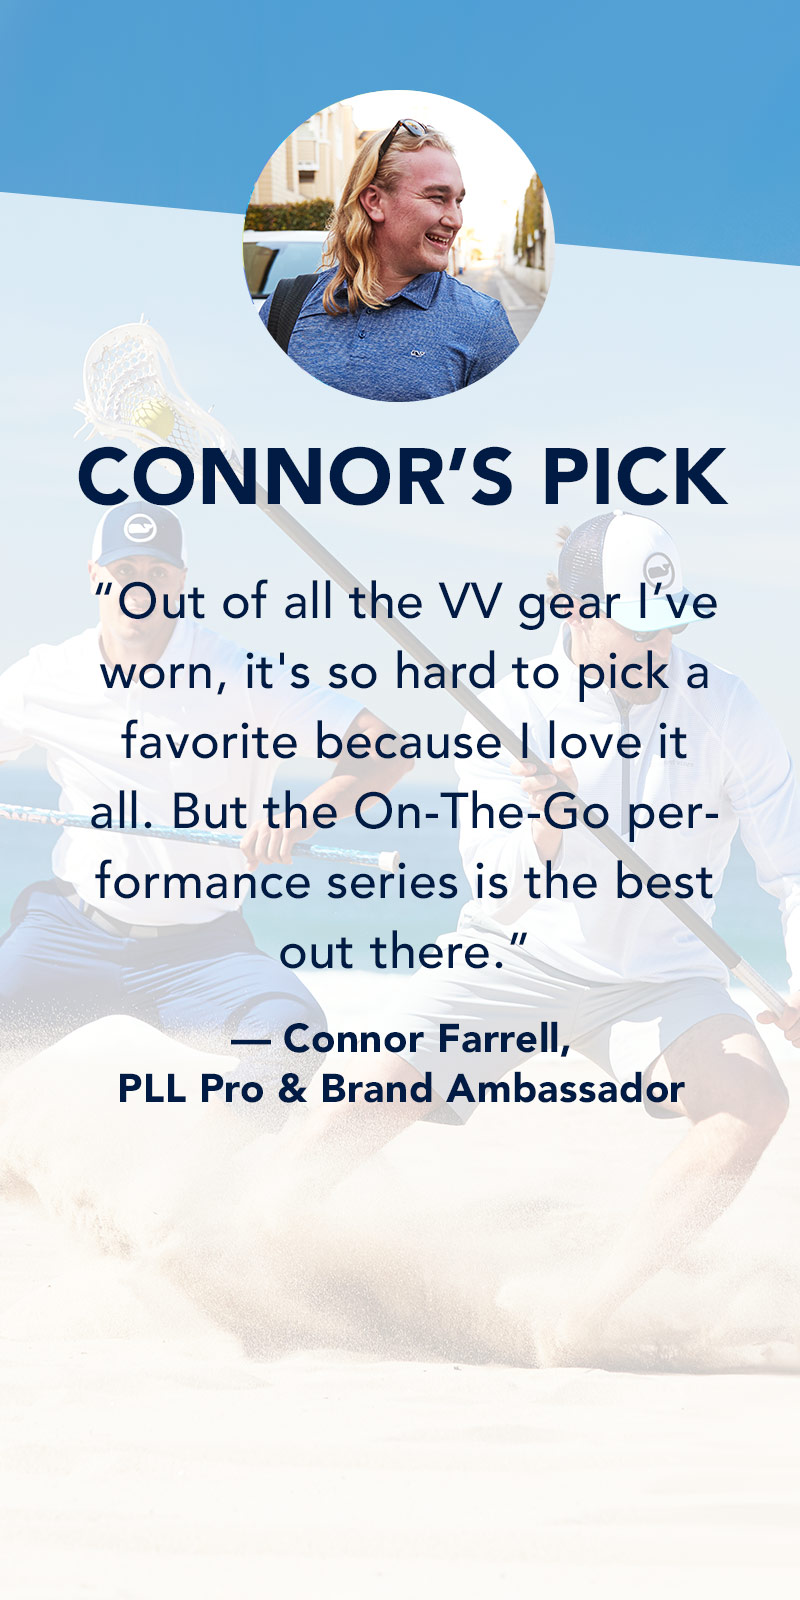 Connor's Pick: Out of all the VV gear I've worn, it's so hard to pick a favorite because I love it all. But the On-The-Go performance series is the best out there. Connor Farrell, PLL Pro & Brand Ambassador